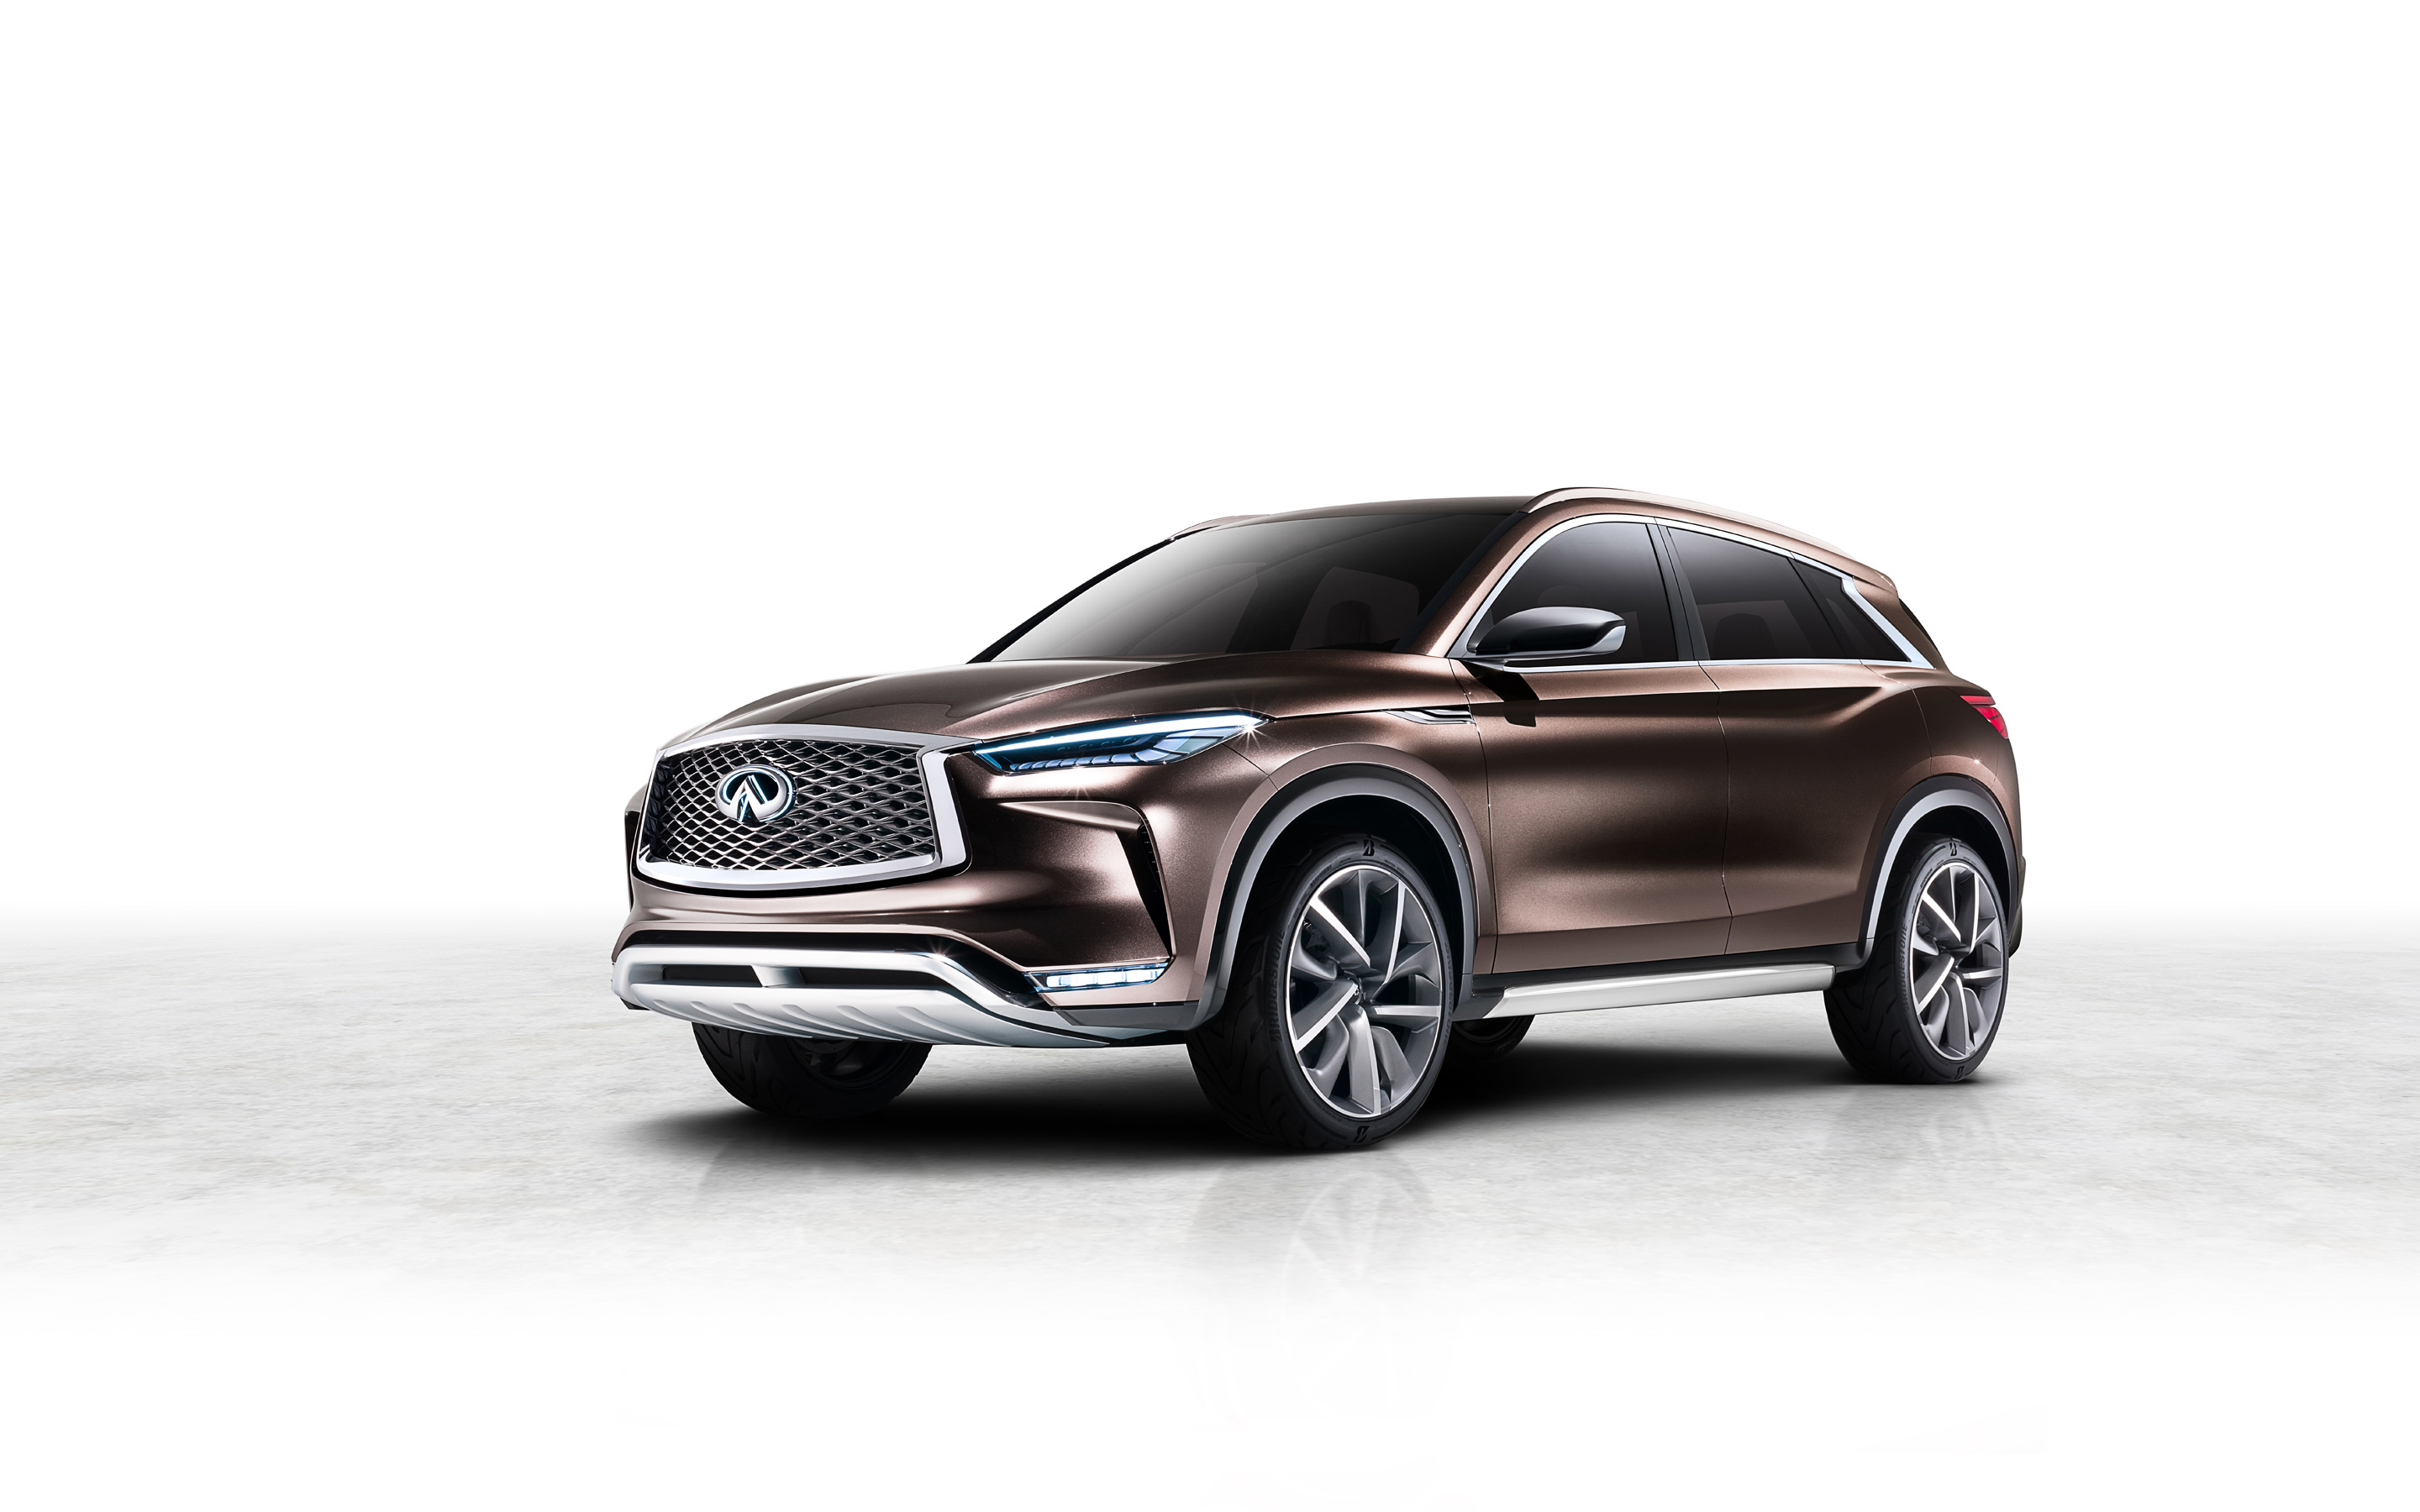 Infiniti qx50 luxury crossover. обои скачать